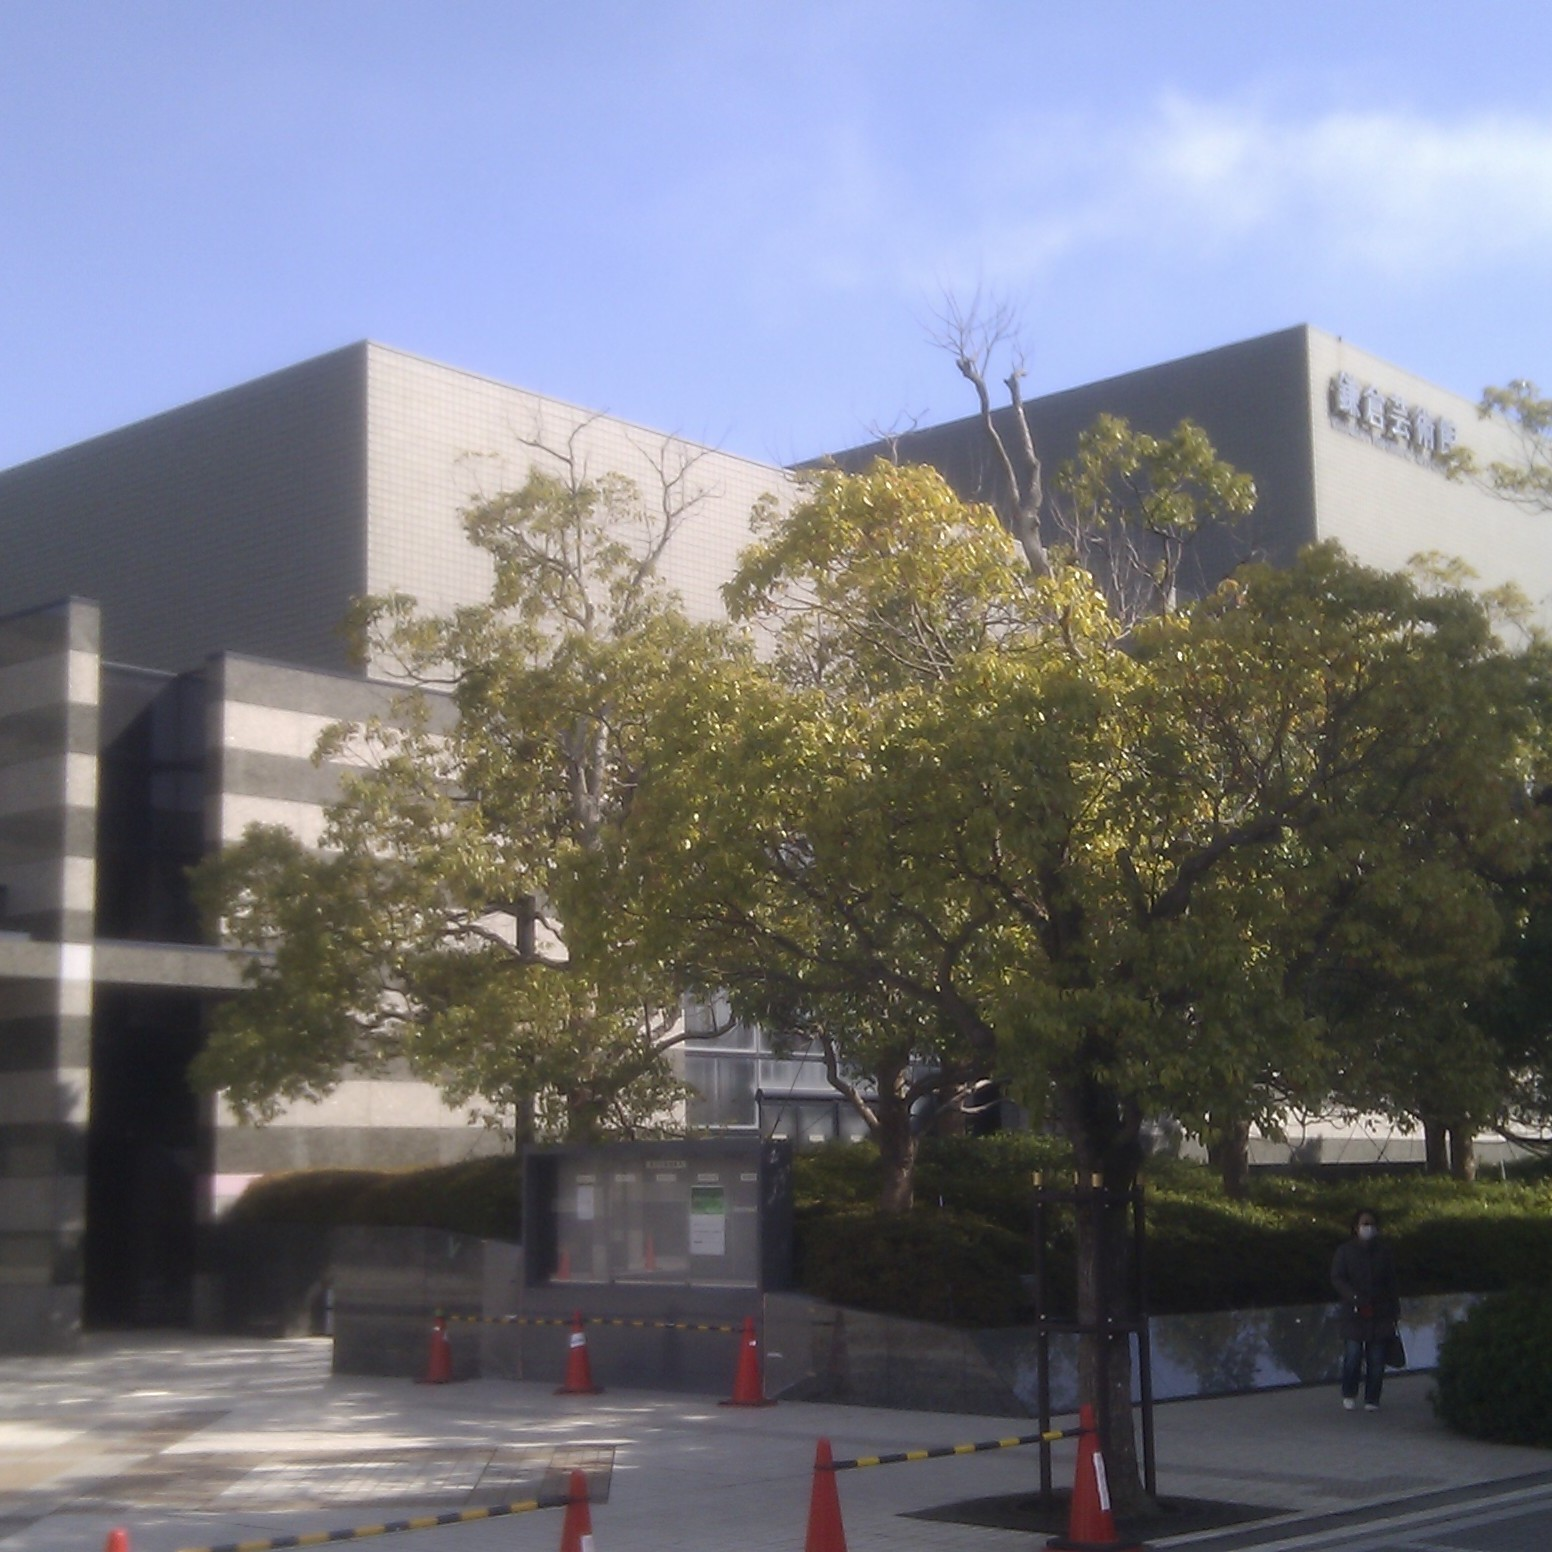 Kamakura Art Center